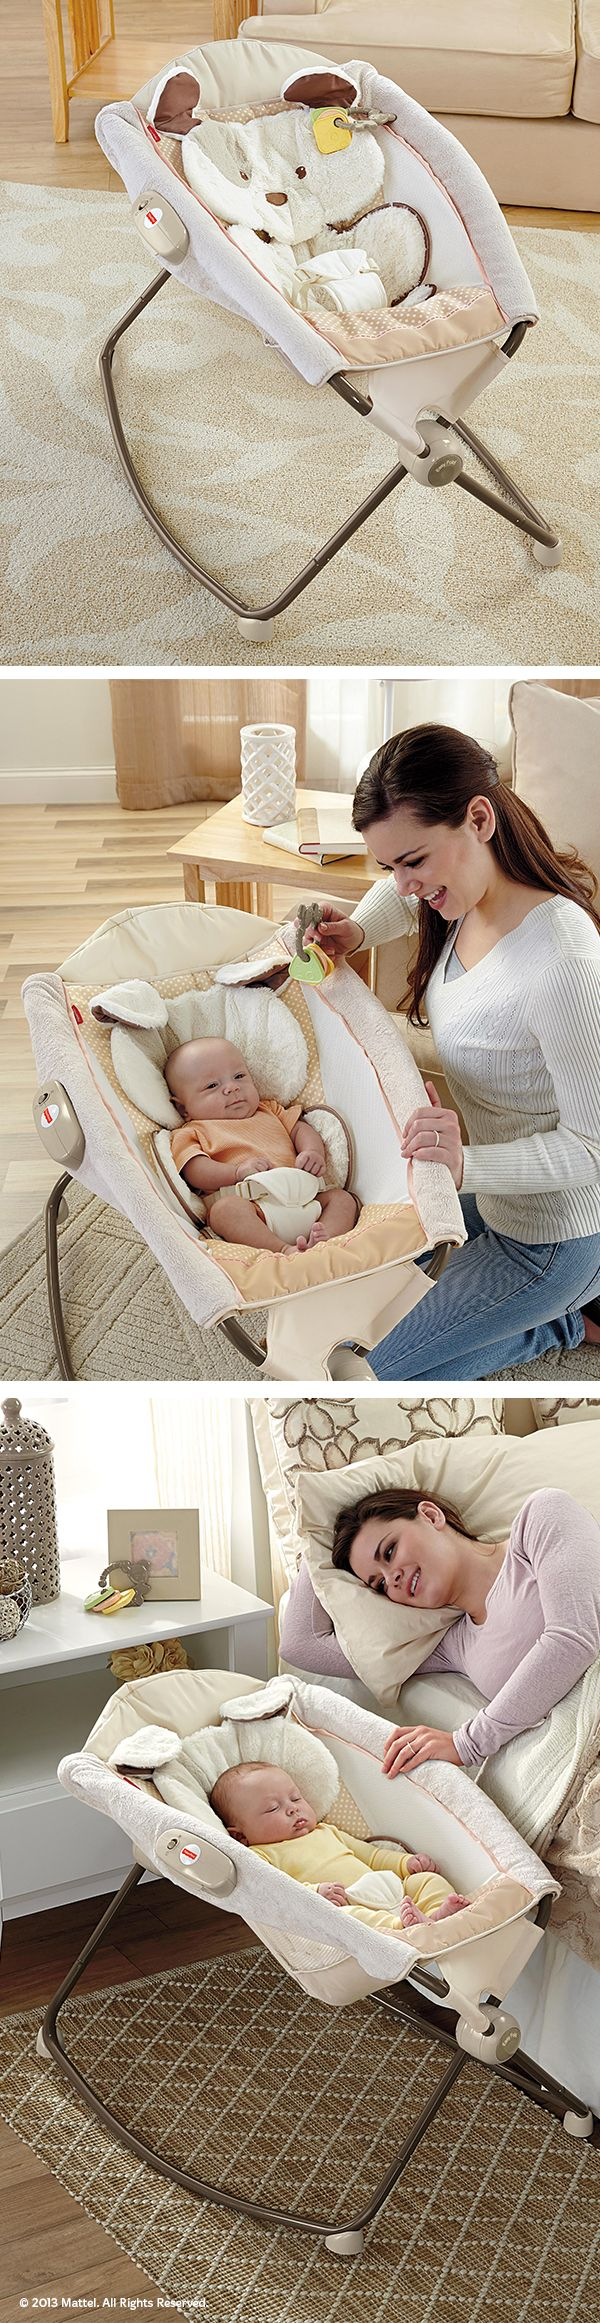 The My Little Snugapuppy™ Deluxe Newborn Rock 'n Play™ Sleeper softly swings and vibrates baby to sleep. #BabyGear